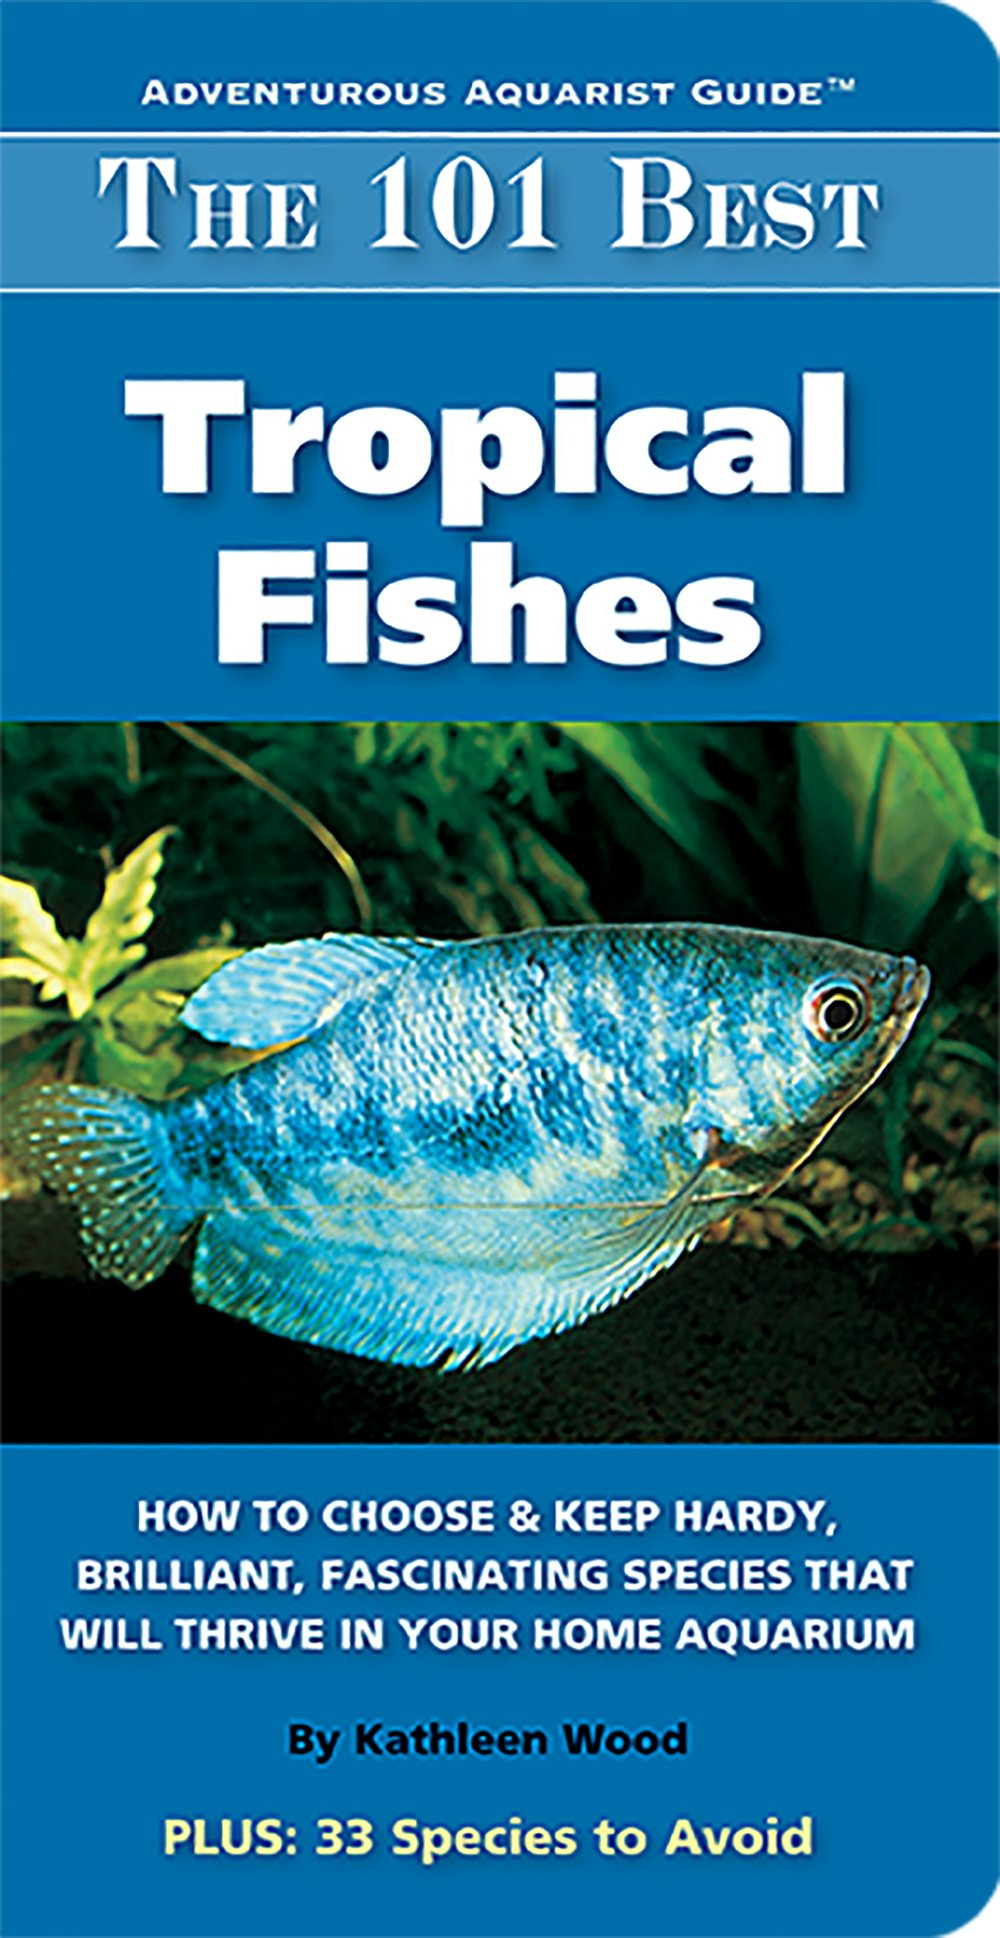 Choosing fish for your aquarium - The 101 Best Tropical Fishes How To Choose Keep Hardy Brilliant Fascinating Species That Will Thrive In Your Home Aquarium Adventurous Aquarist